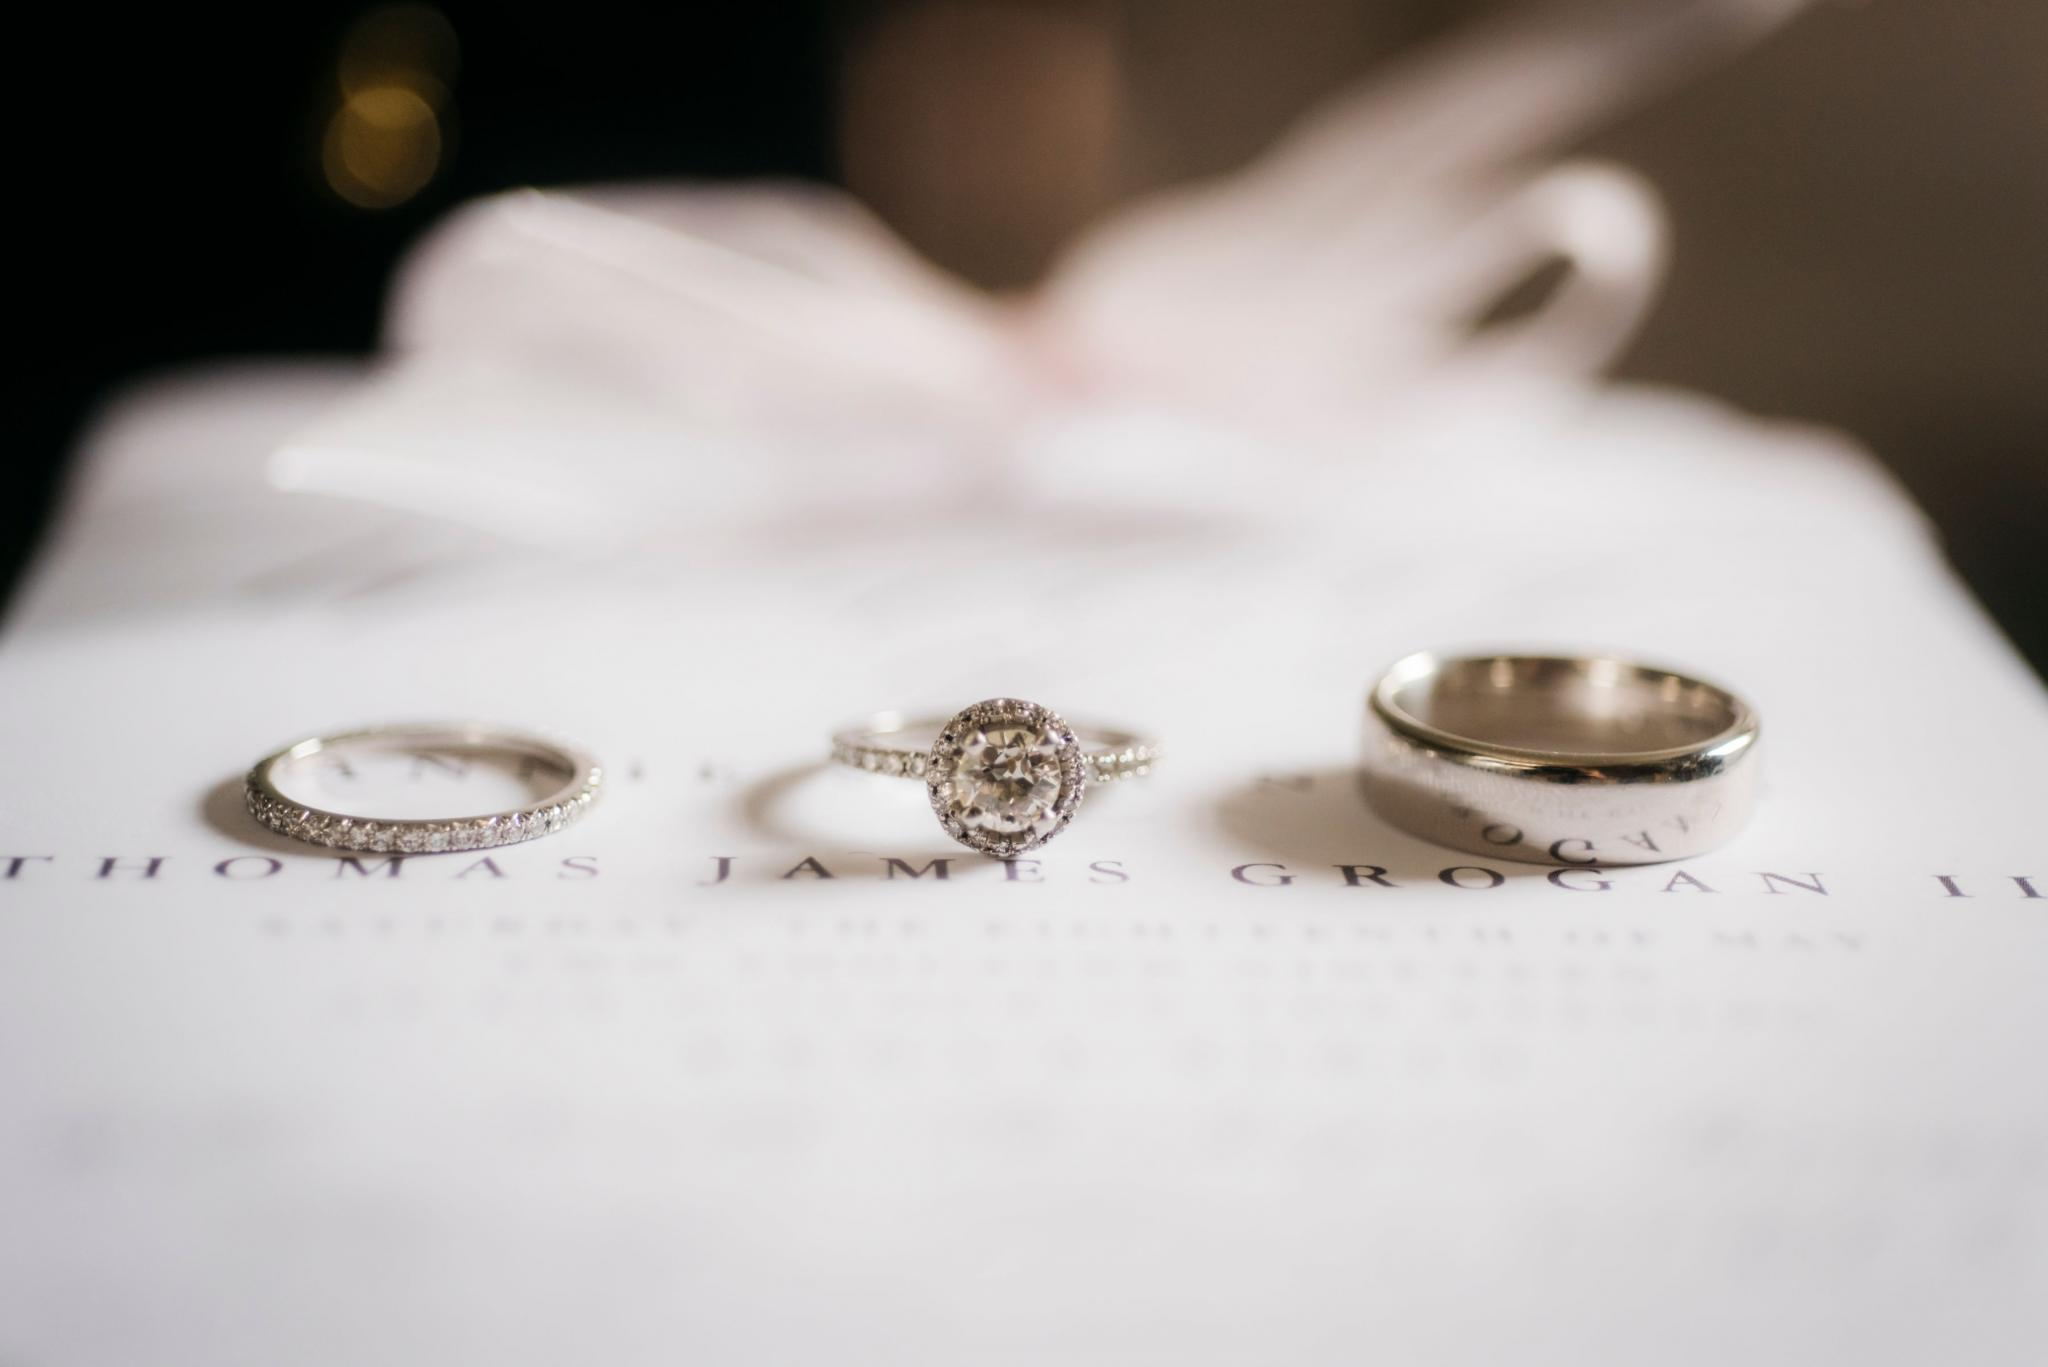 annie tommy venue SIX10 chicago, il wedding rings